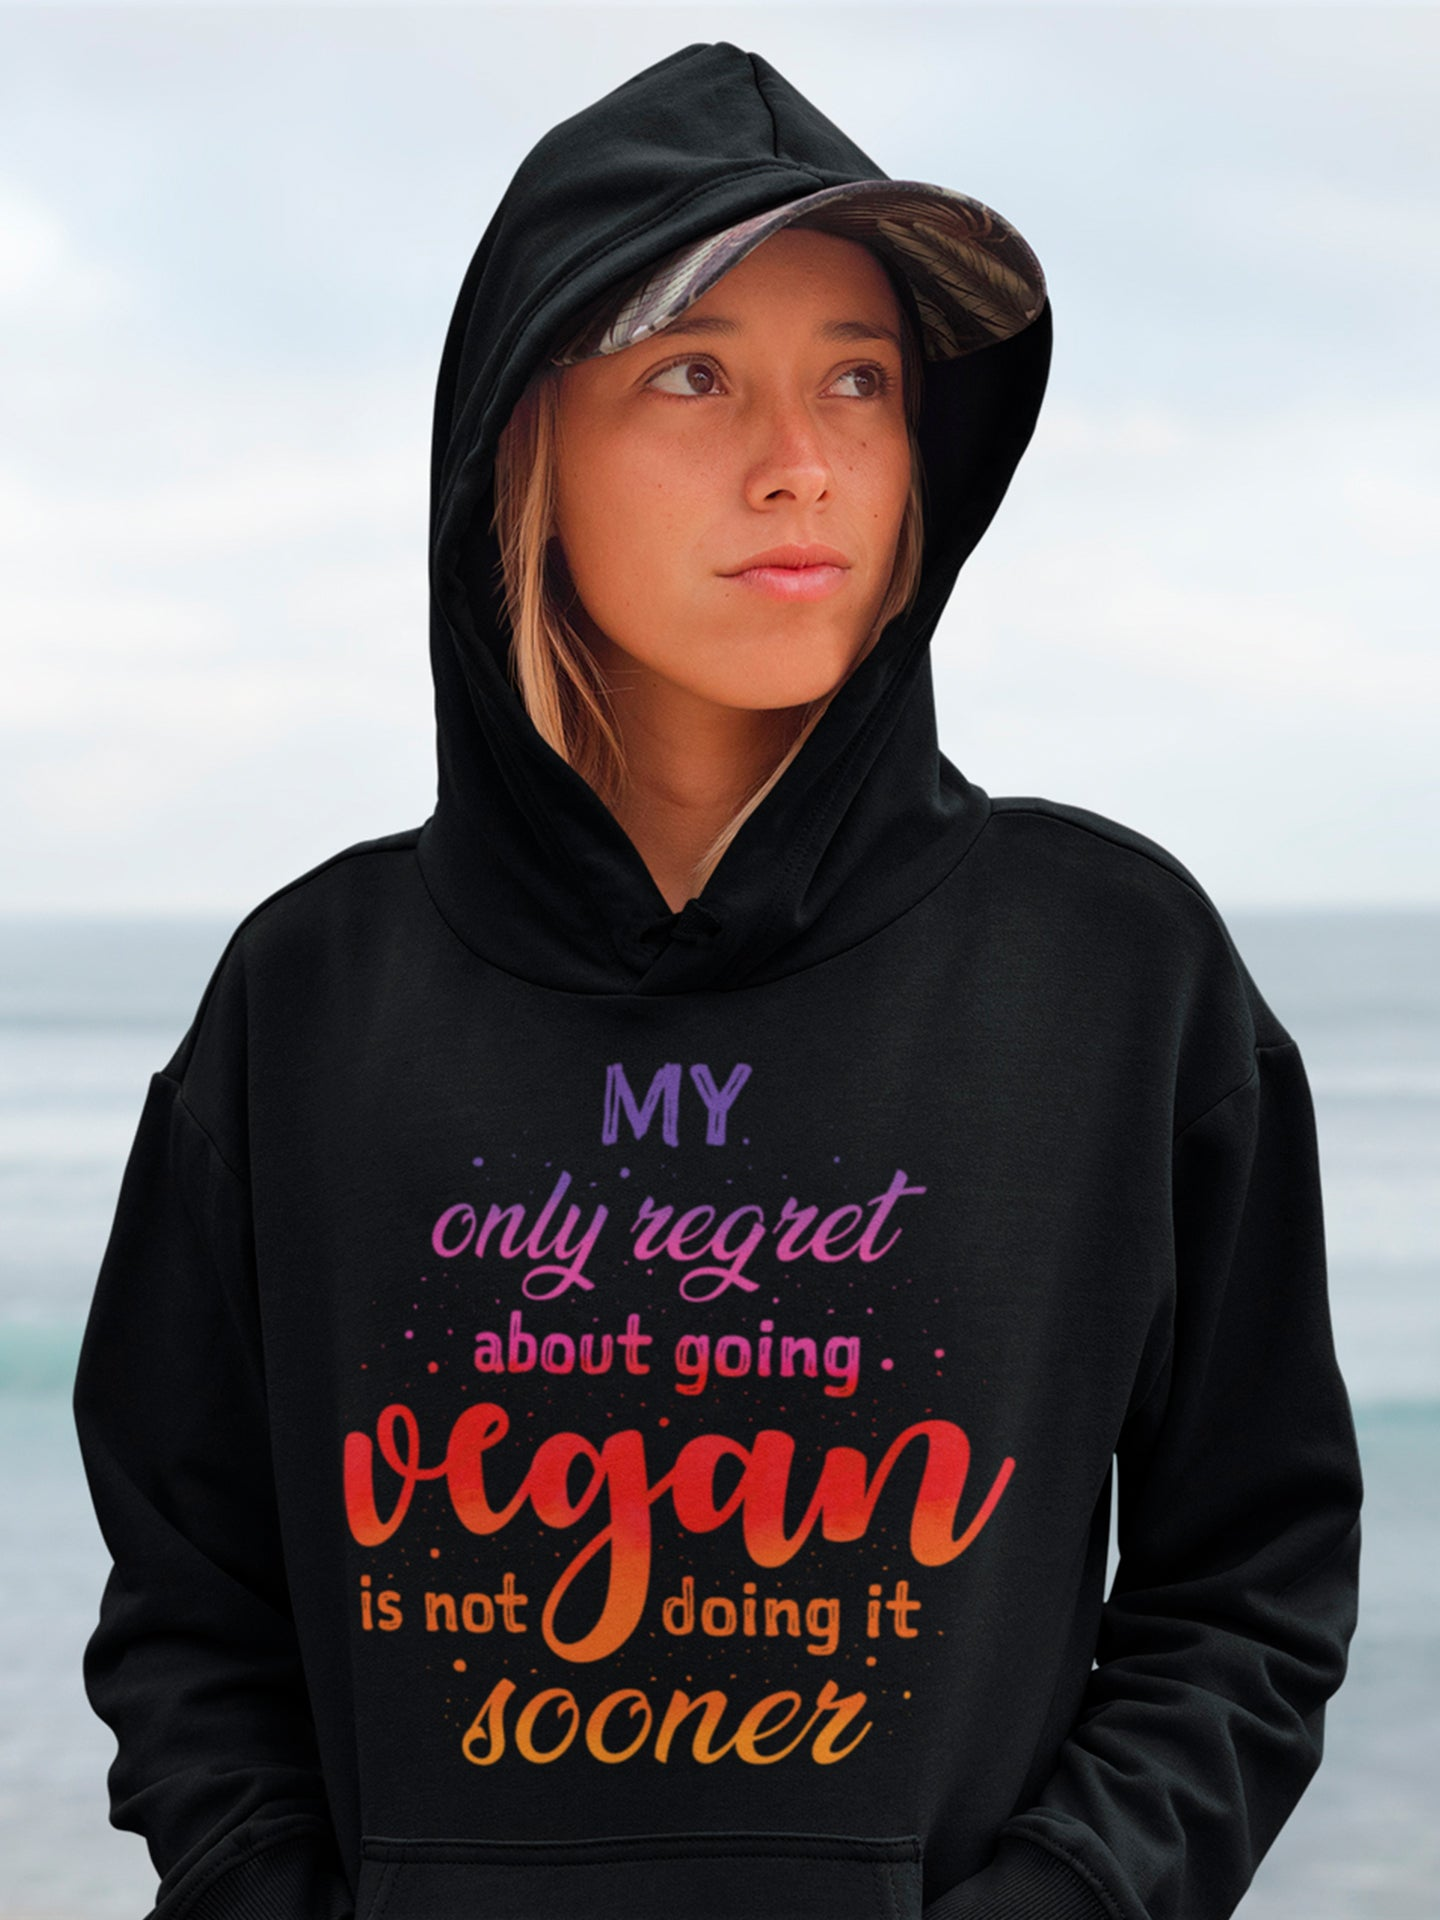 About being vegan hoodie